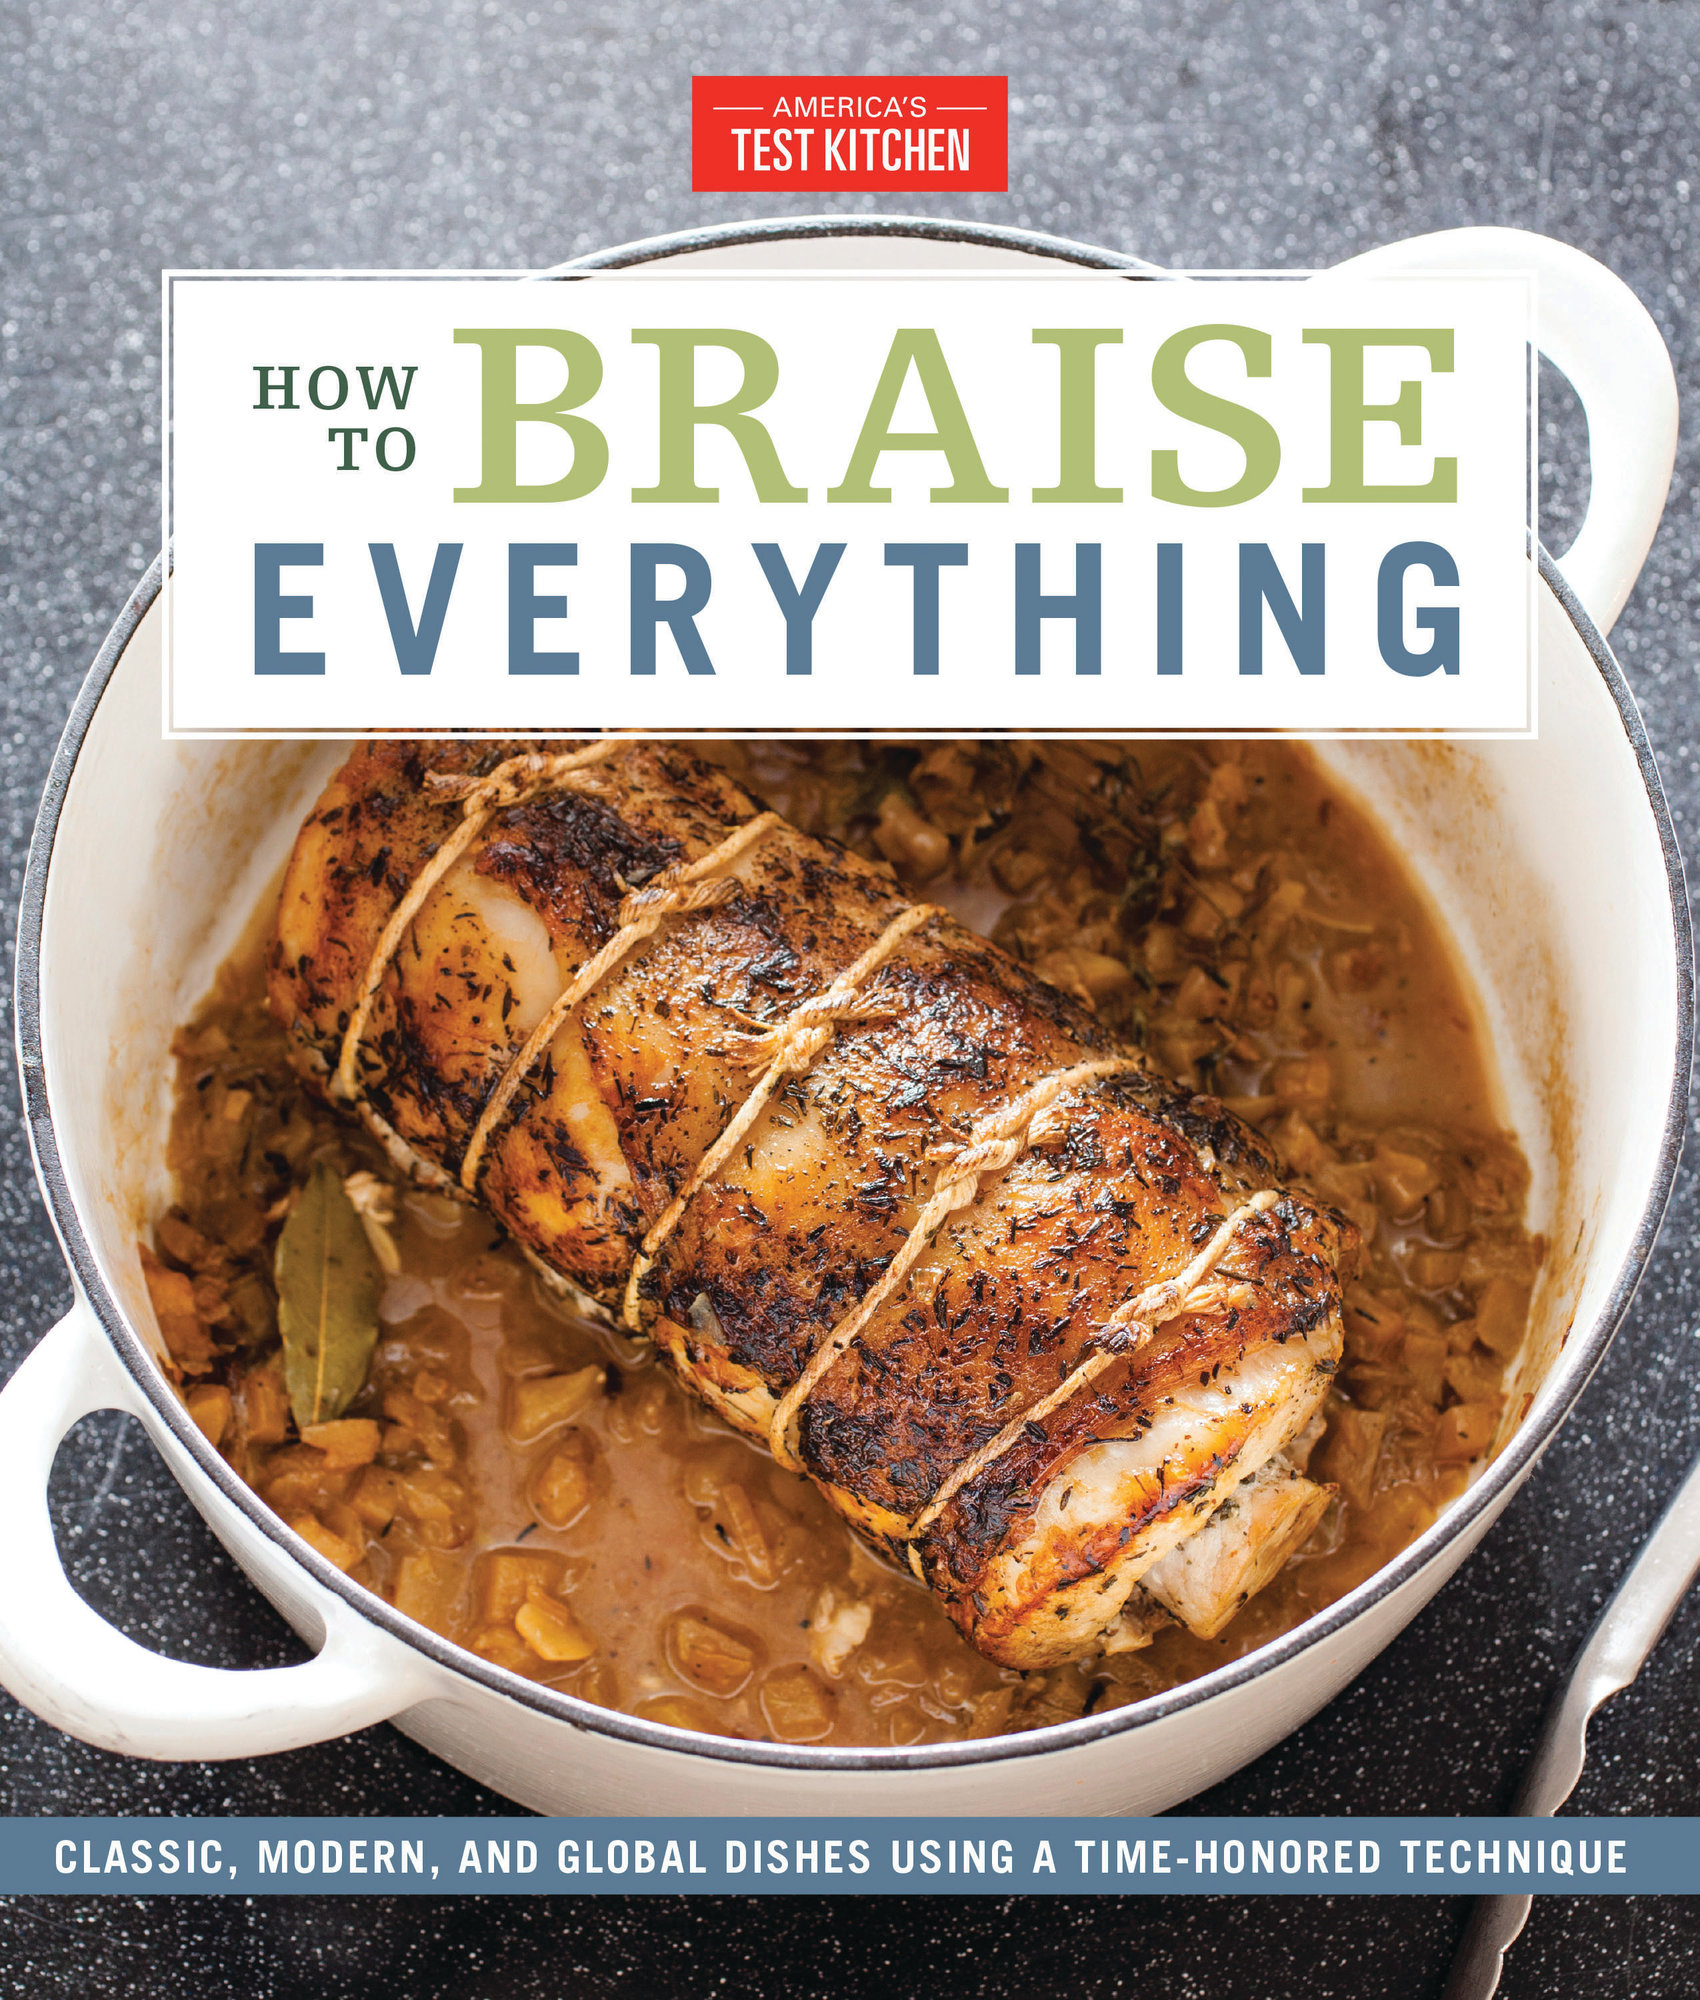 "This image provided by America's Test Kitchen in February 2019 shows the cover for the cookbook ""How to Braise Everything."" It includes a recipe for Garlicky Braised Kale."